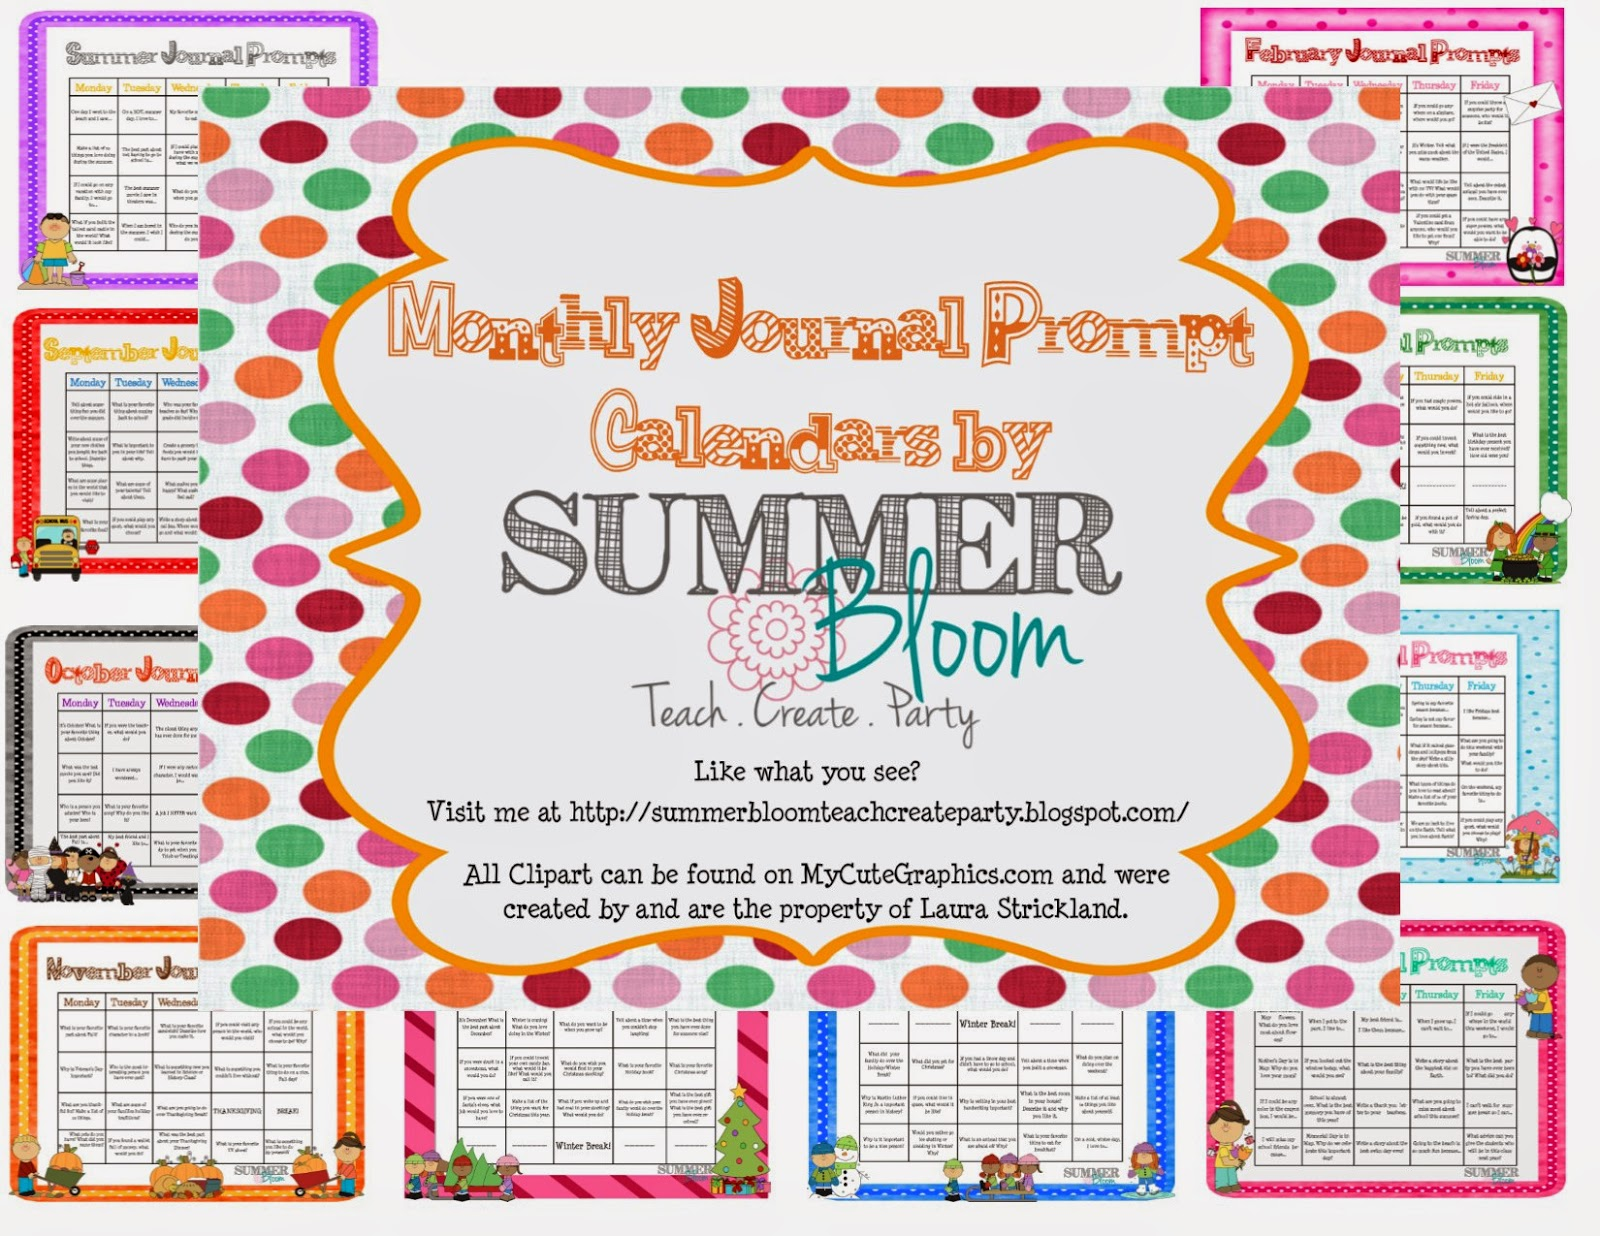 whole year of journal prompt calendars you can download them from my ...